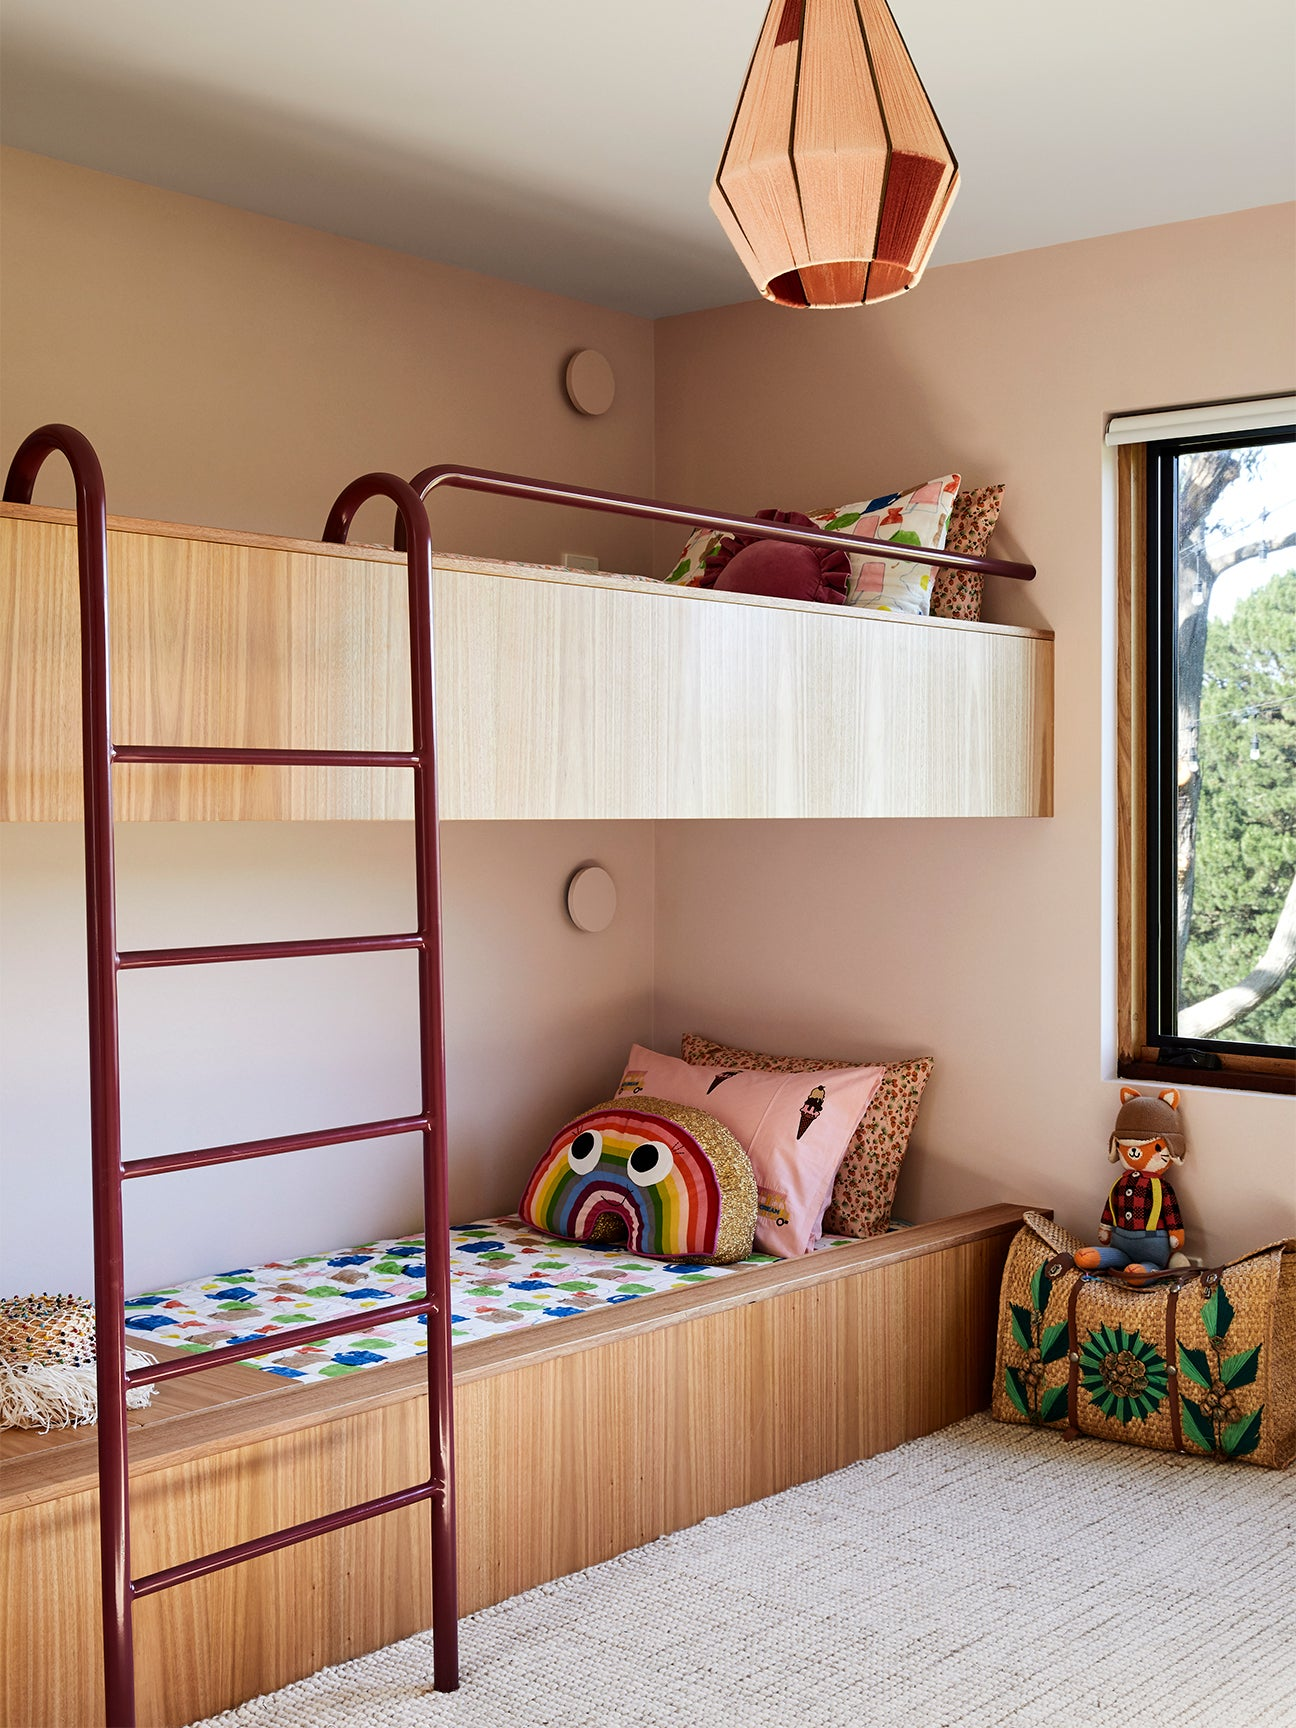 Bunk beds with burgundy railing